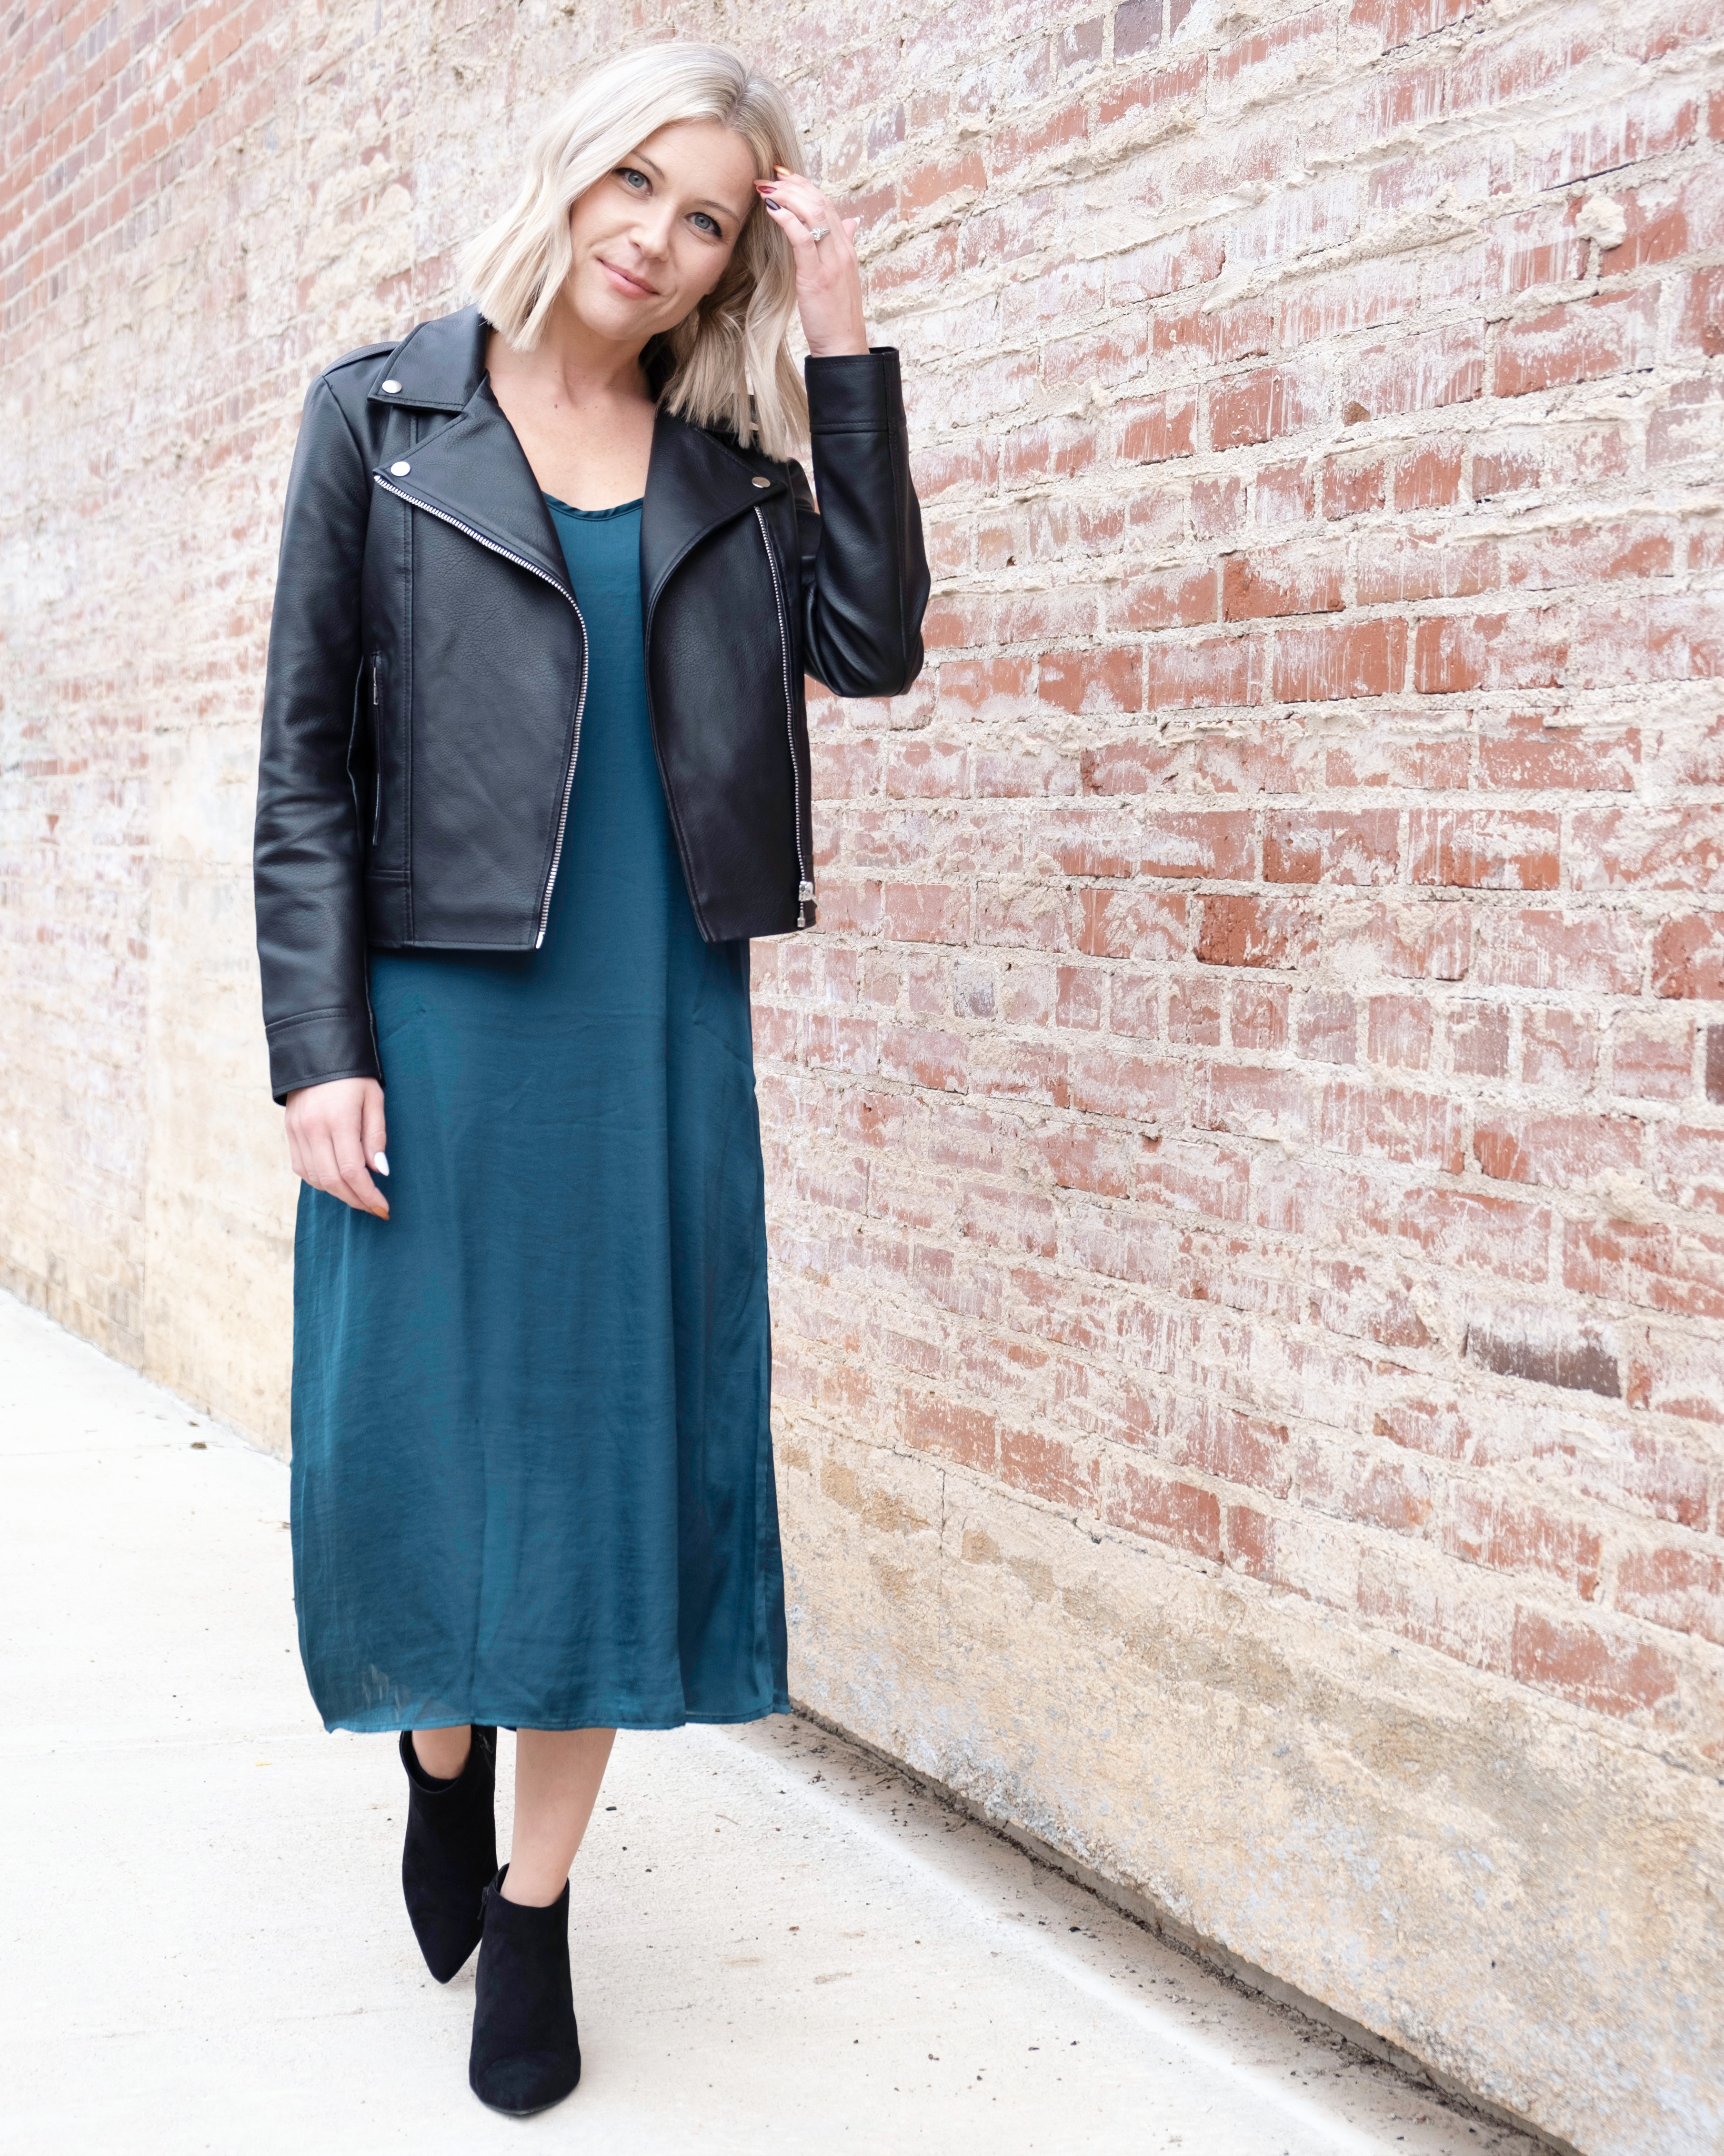 woman wearing an emerald green slip dress with faux leather moto jacket